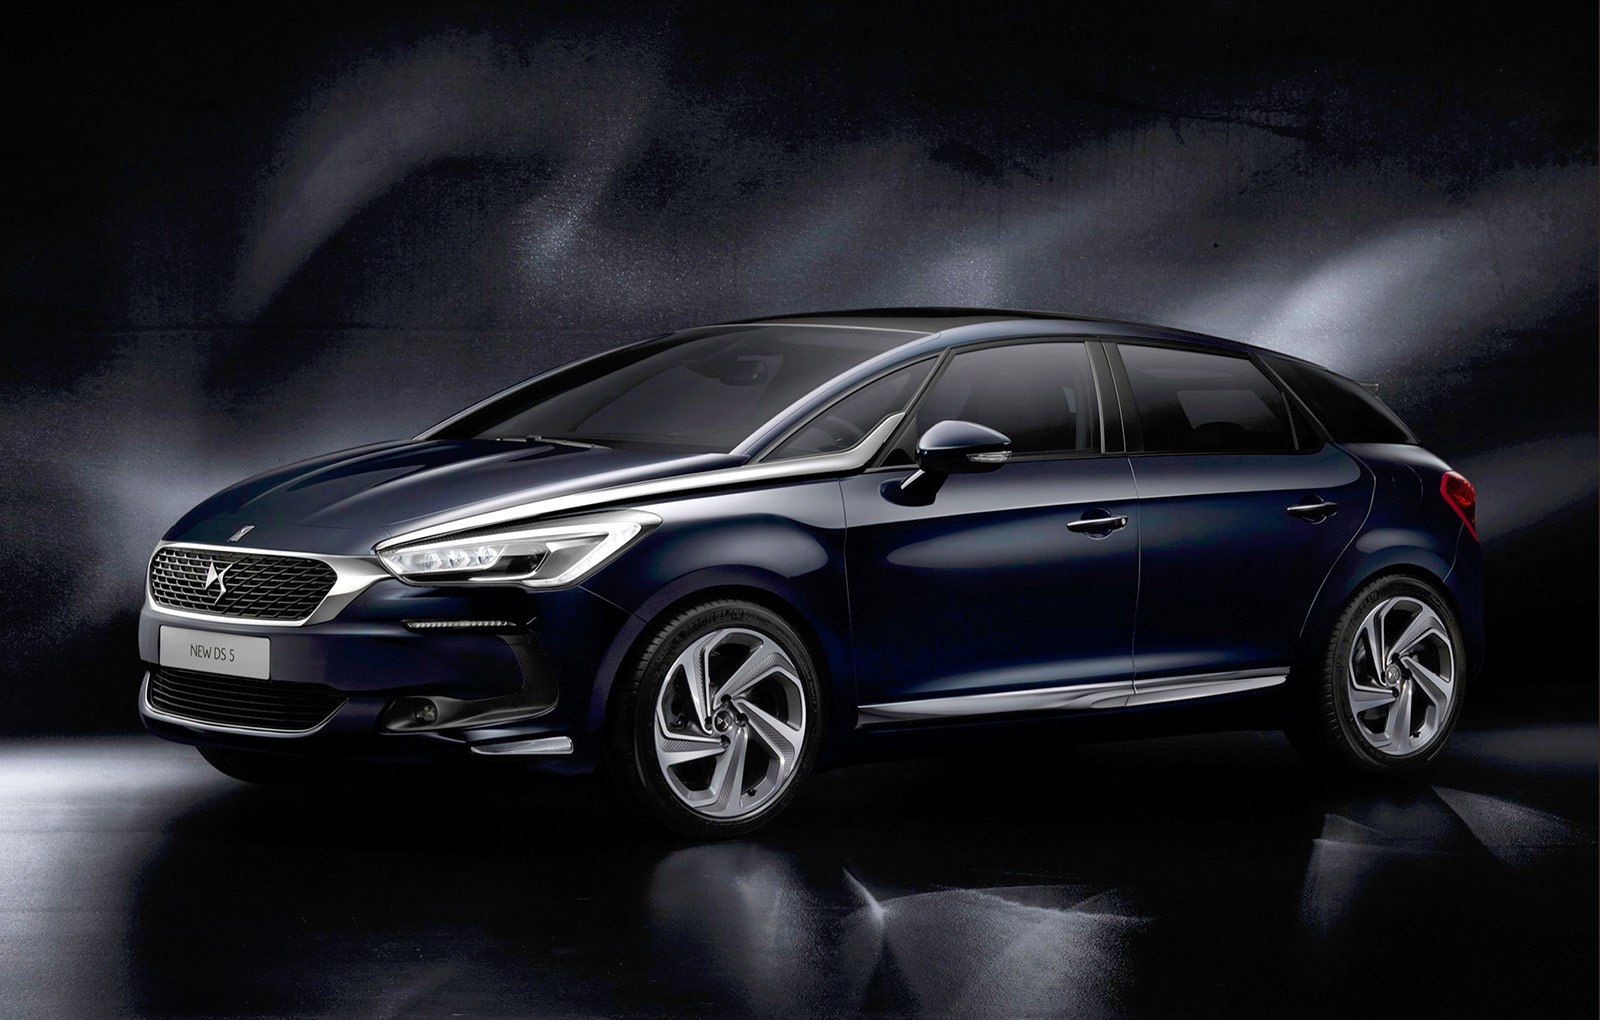 New-Citroen-DS5-01